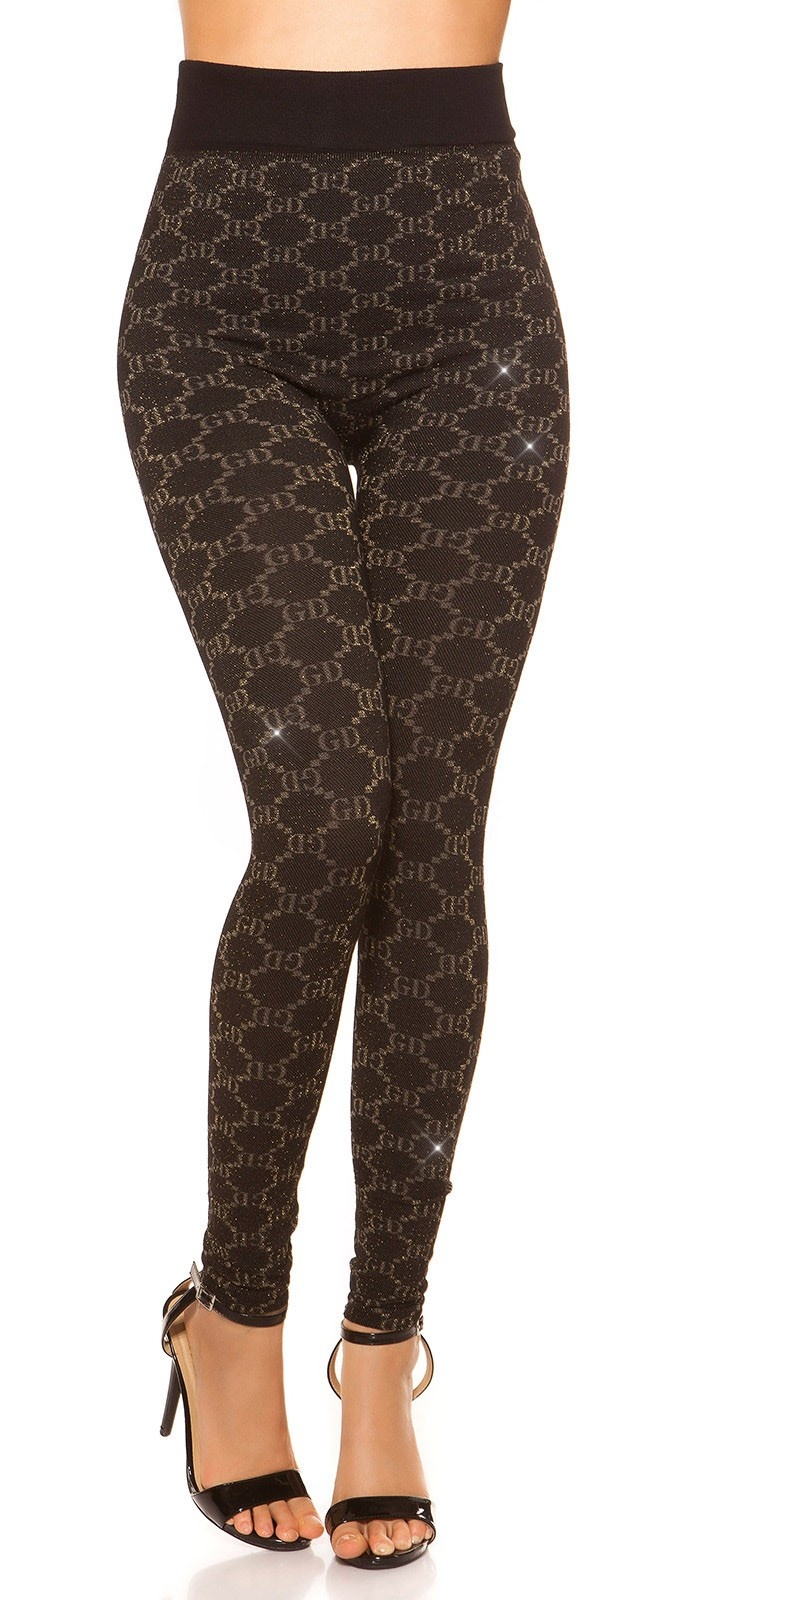 Sexy leggings with glitter threads and patterns Gold